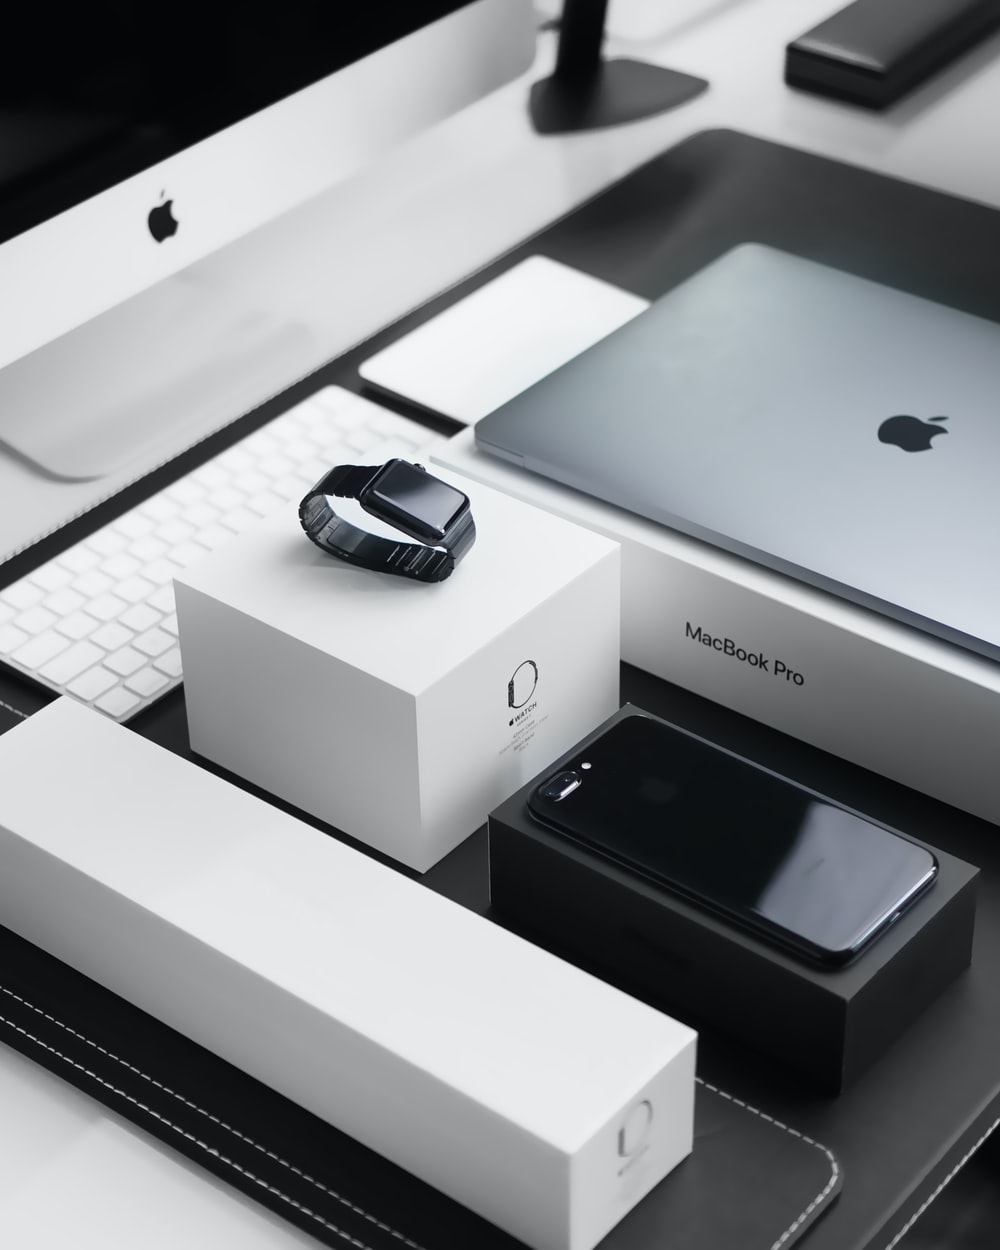 Many Apple products lovingly on display with their original packaging